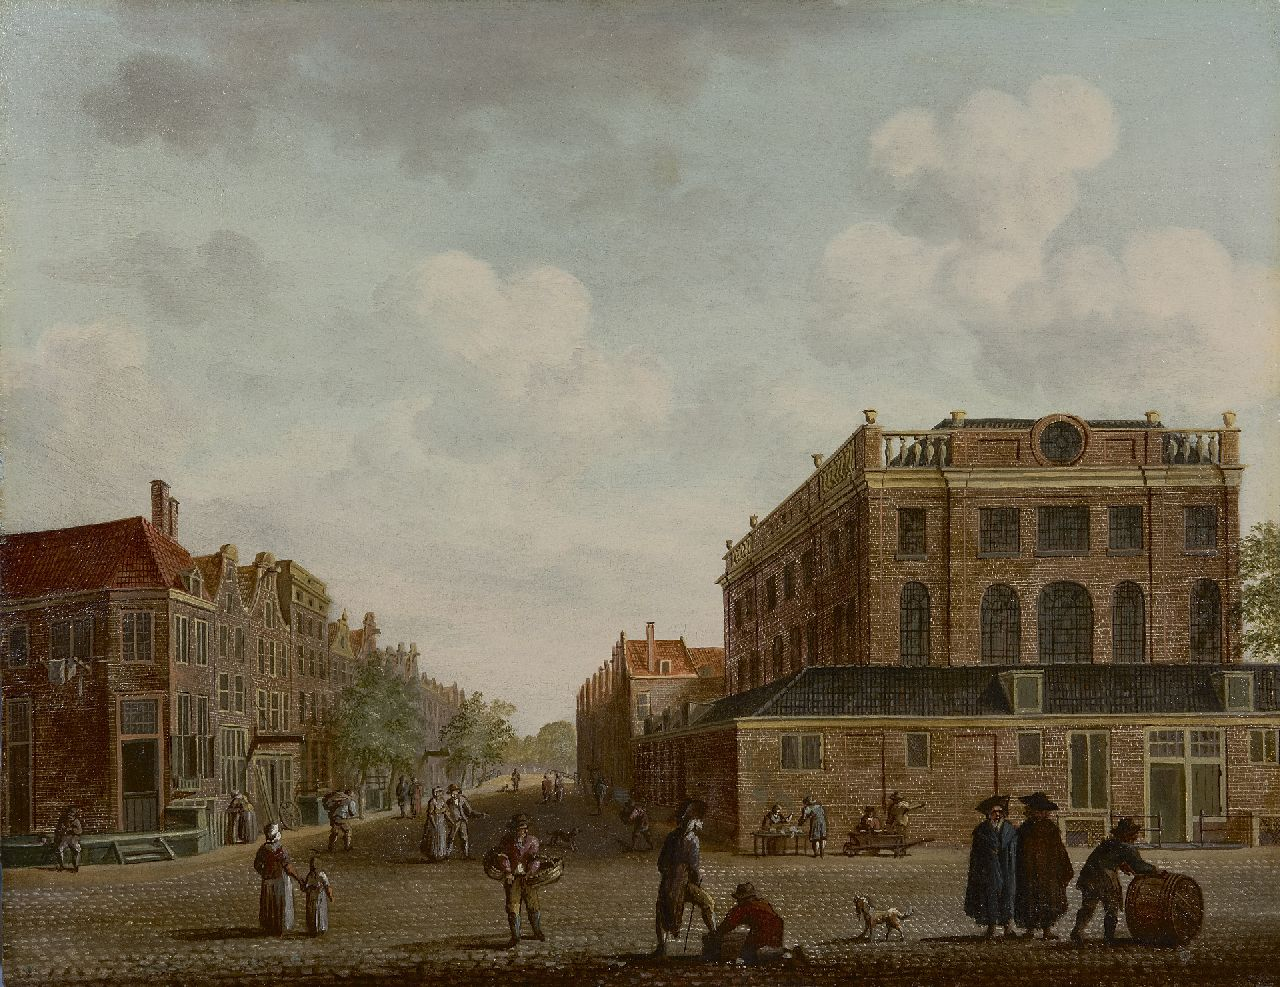 Fredericus Theodorus Renard | Portuguese Synagogue in Amsterdam, oil on panel, 33.8 x 43.8 cm, late 18th century